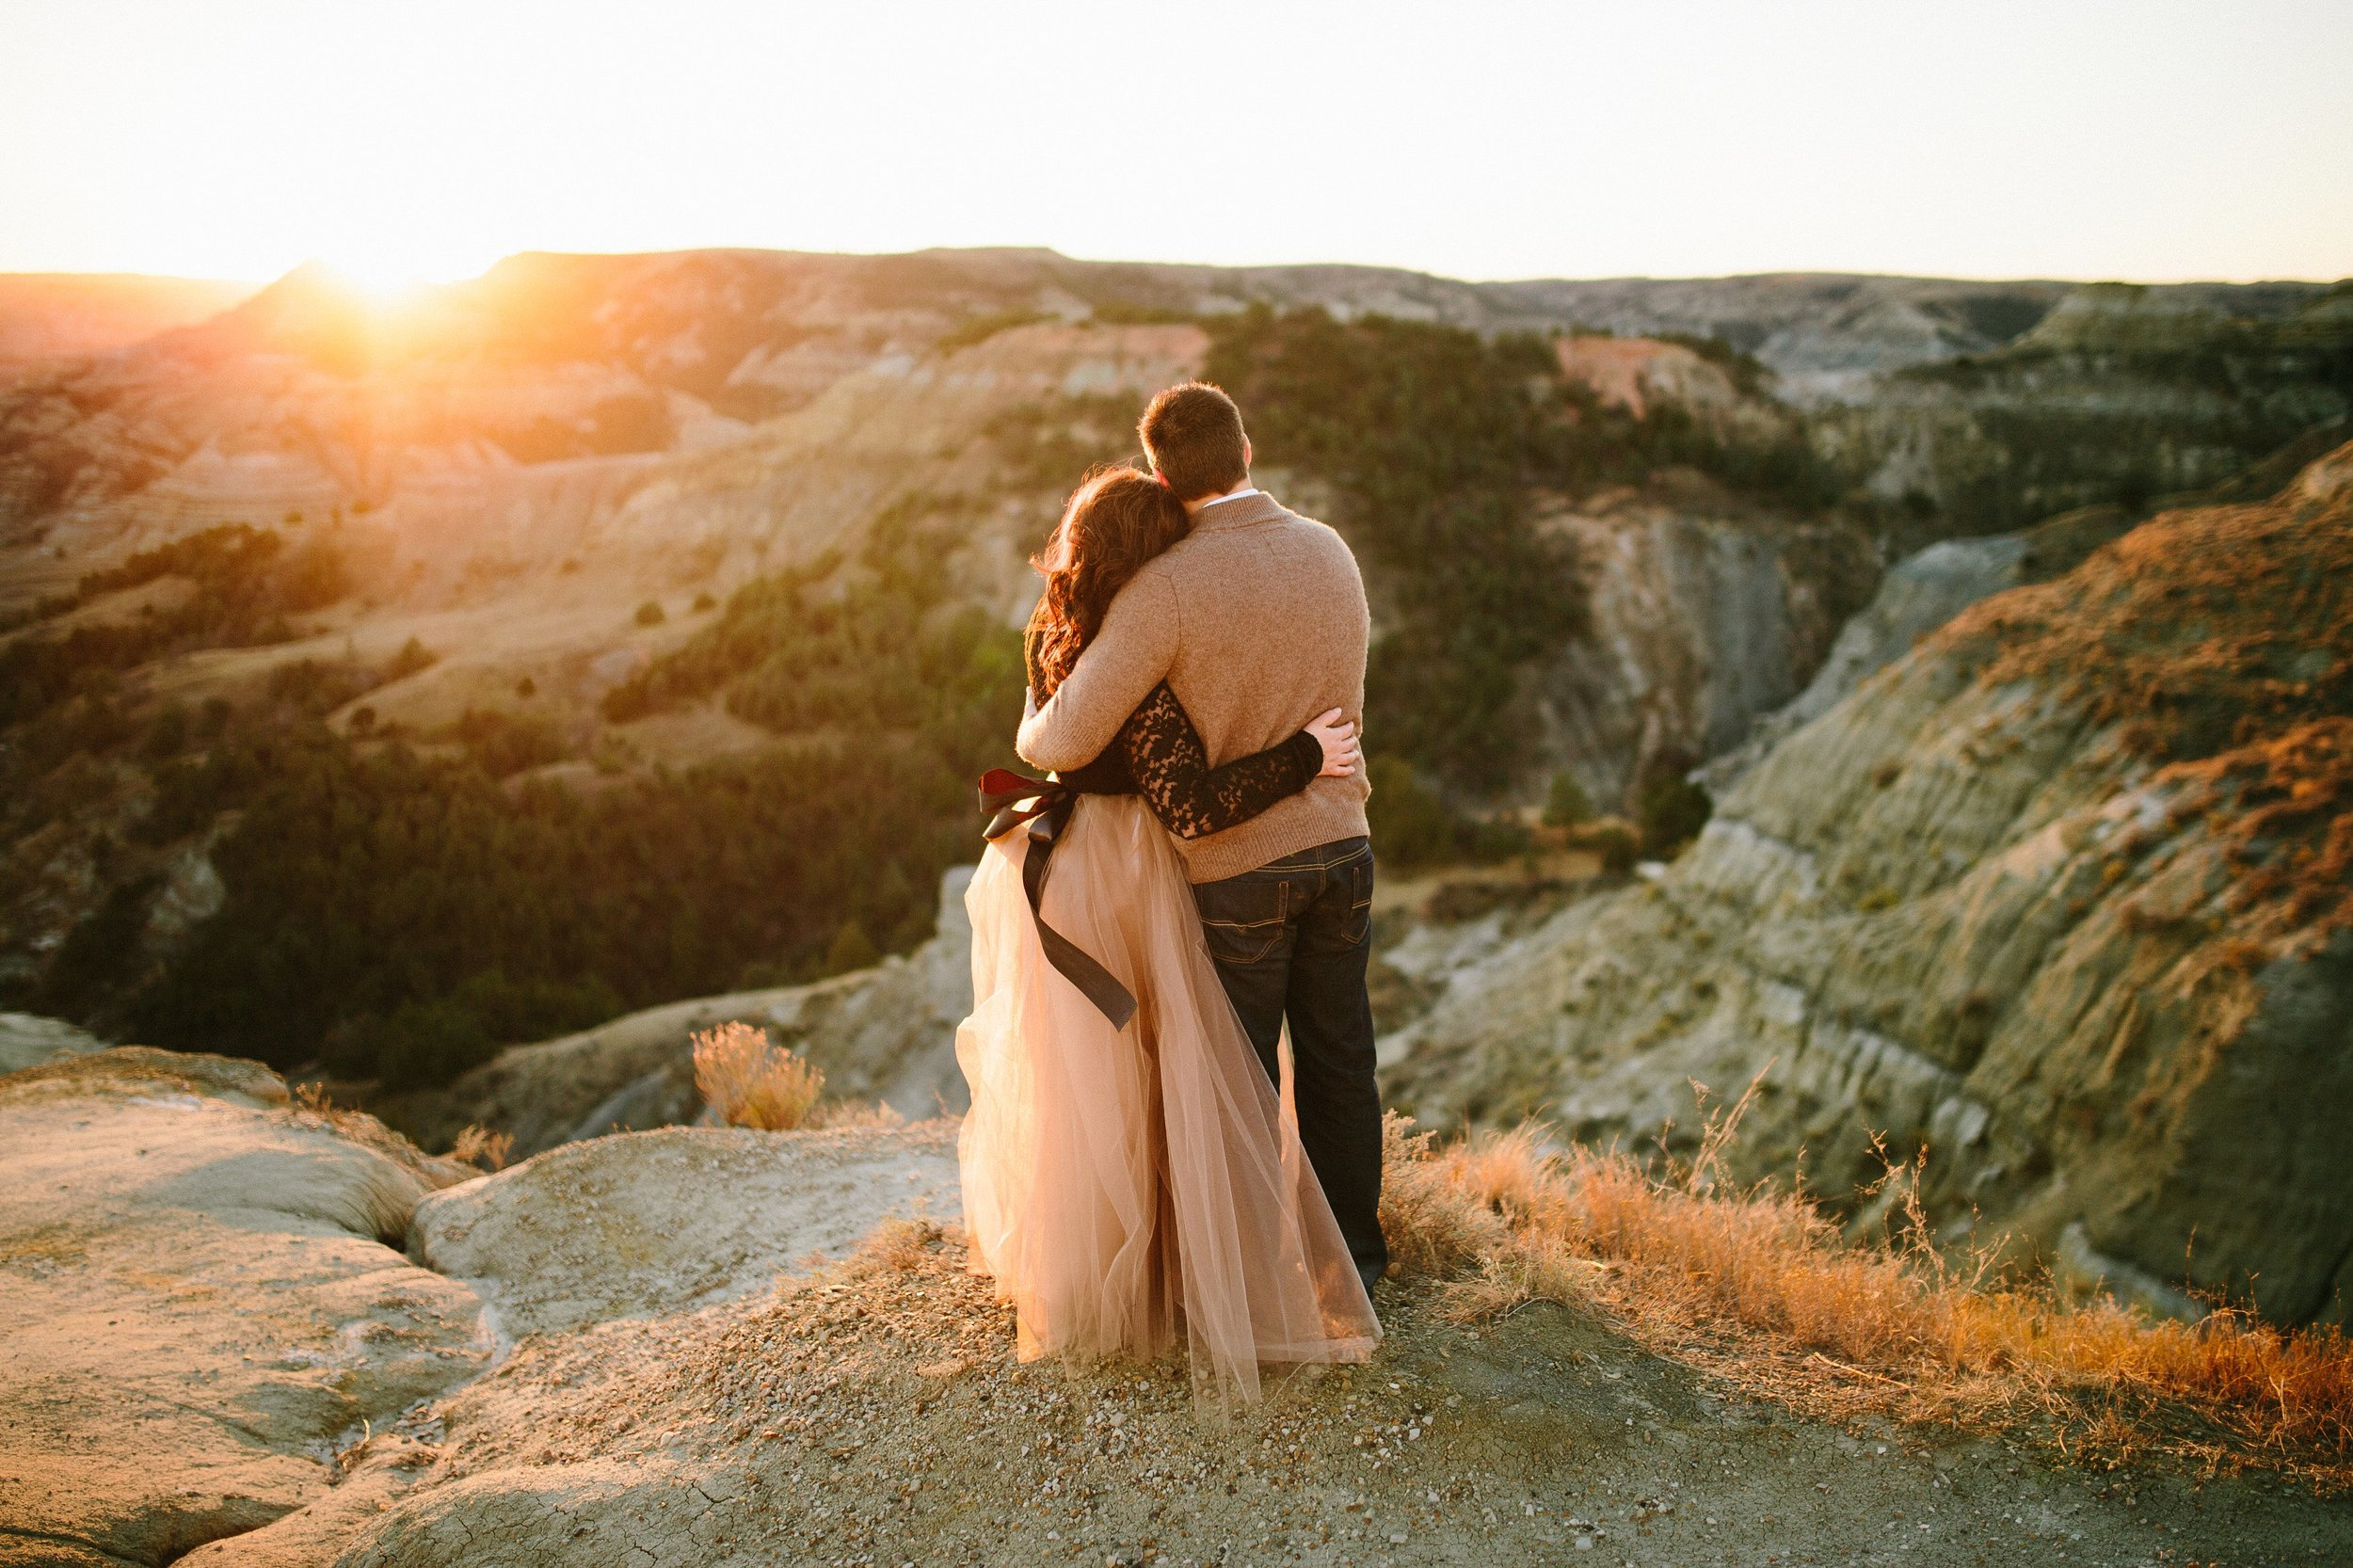 Romantic Sunset Couples Session at the Theodore Roosevelt National Park in North Dakota by Seattle WA destination photographer Janelle Elaine Photography with pink tulle skirt.jpg